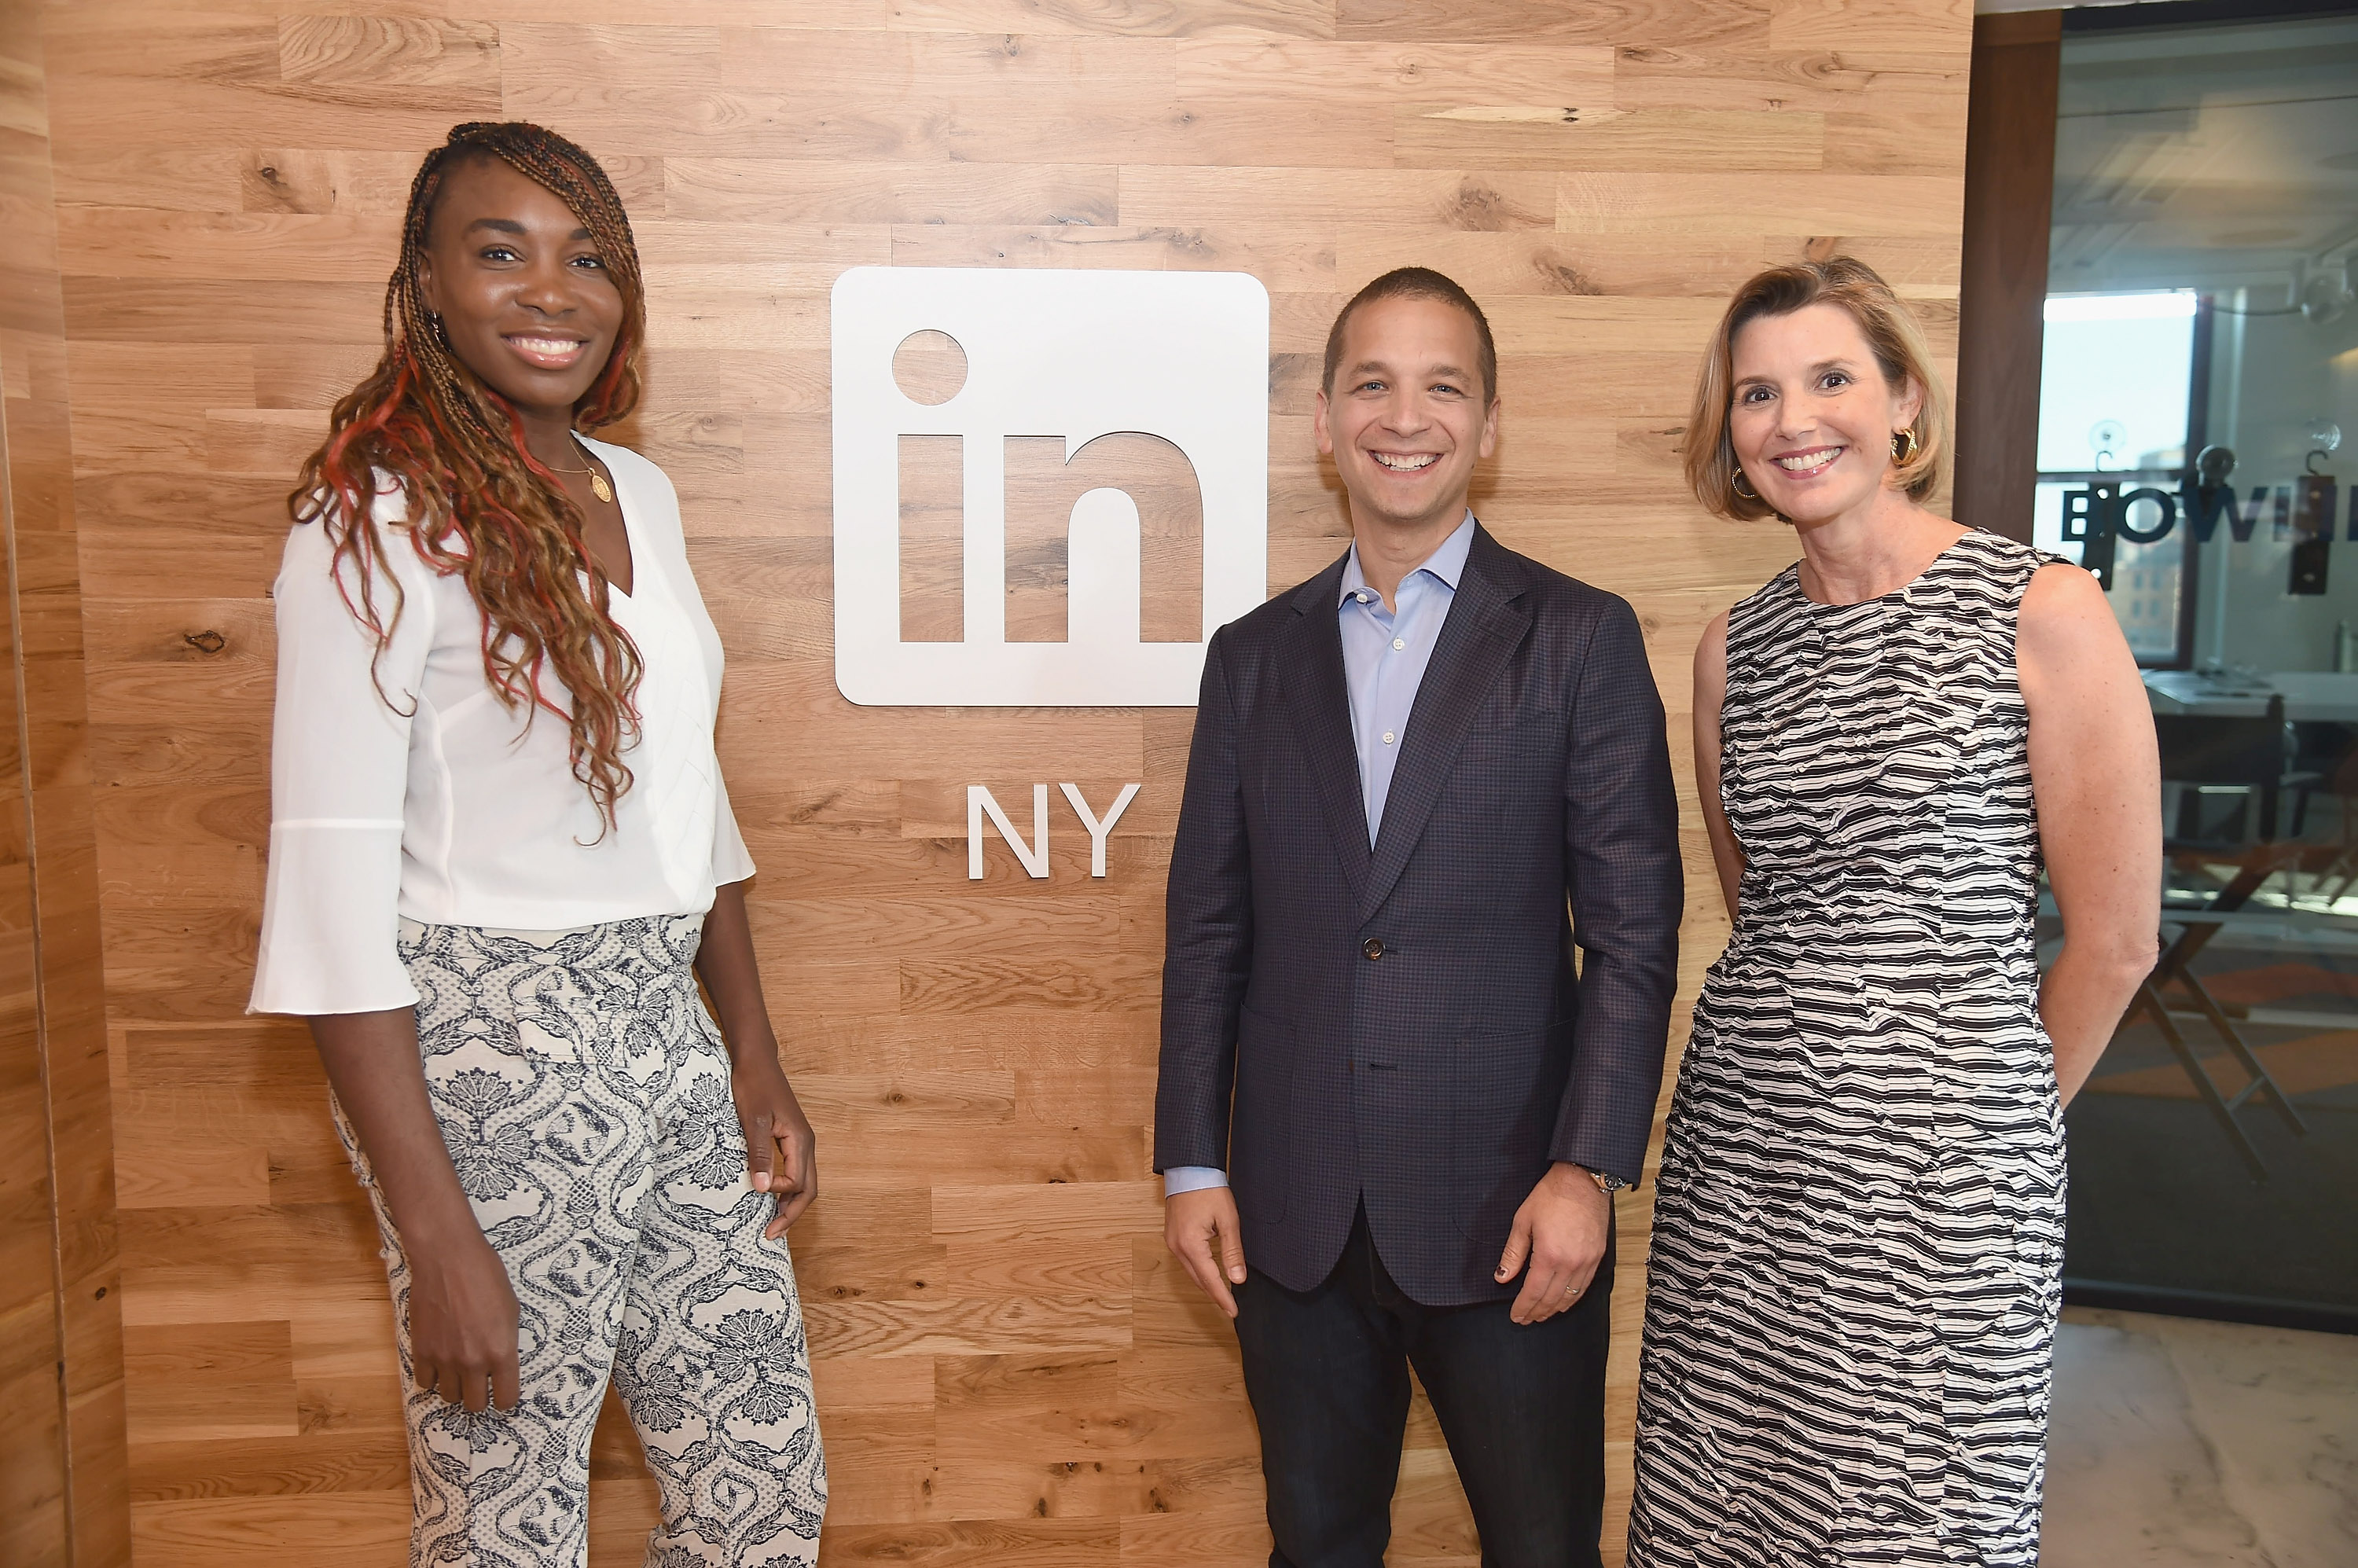 Venus Williams And Sallie Krawcheck Sit Down With LinkedIn Executive Editor Dan Roth